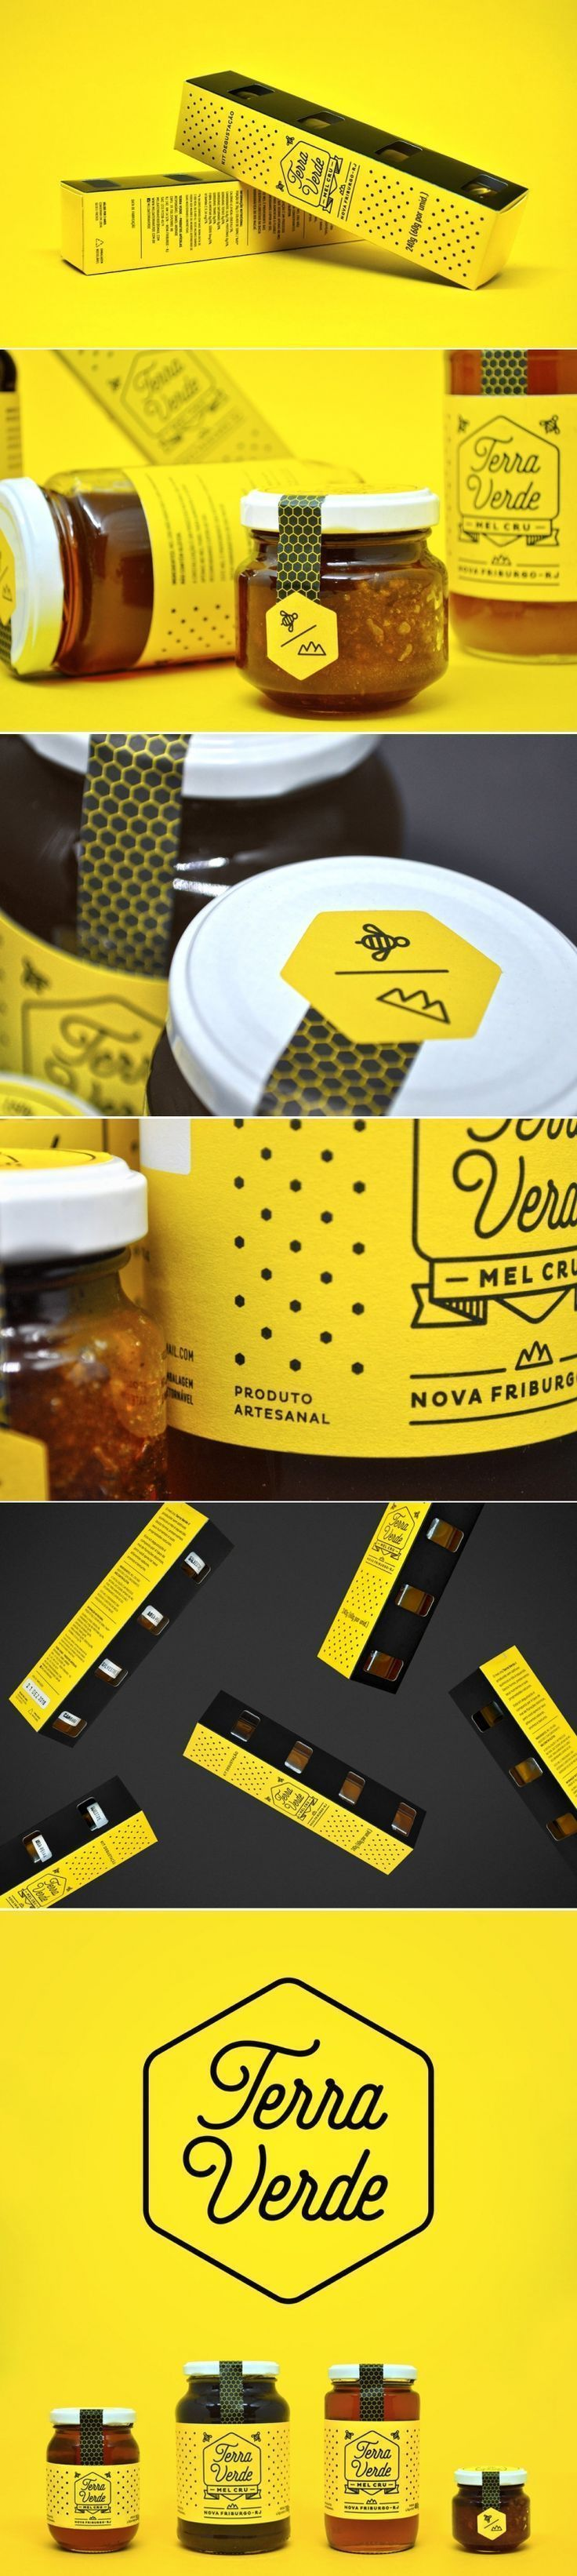 Energy Efficient Home Upgrades in Los Angeles For $0 Down -- Home Improvement Hub -- Via - Beautiful Sustainable Honey Packaging — The Dieline - Branding & Packaging Design #HomeEnergyImprovements